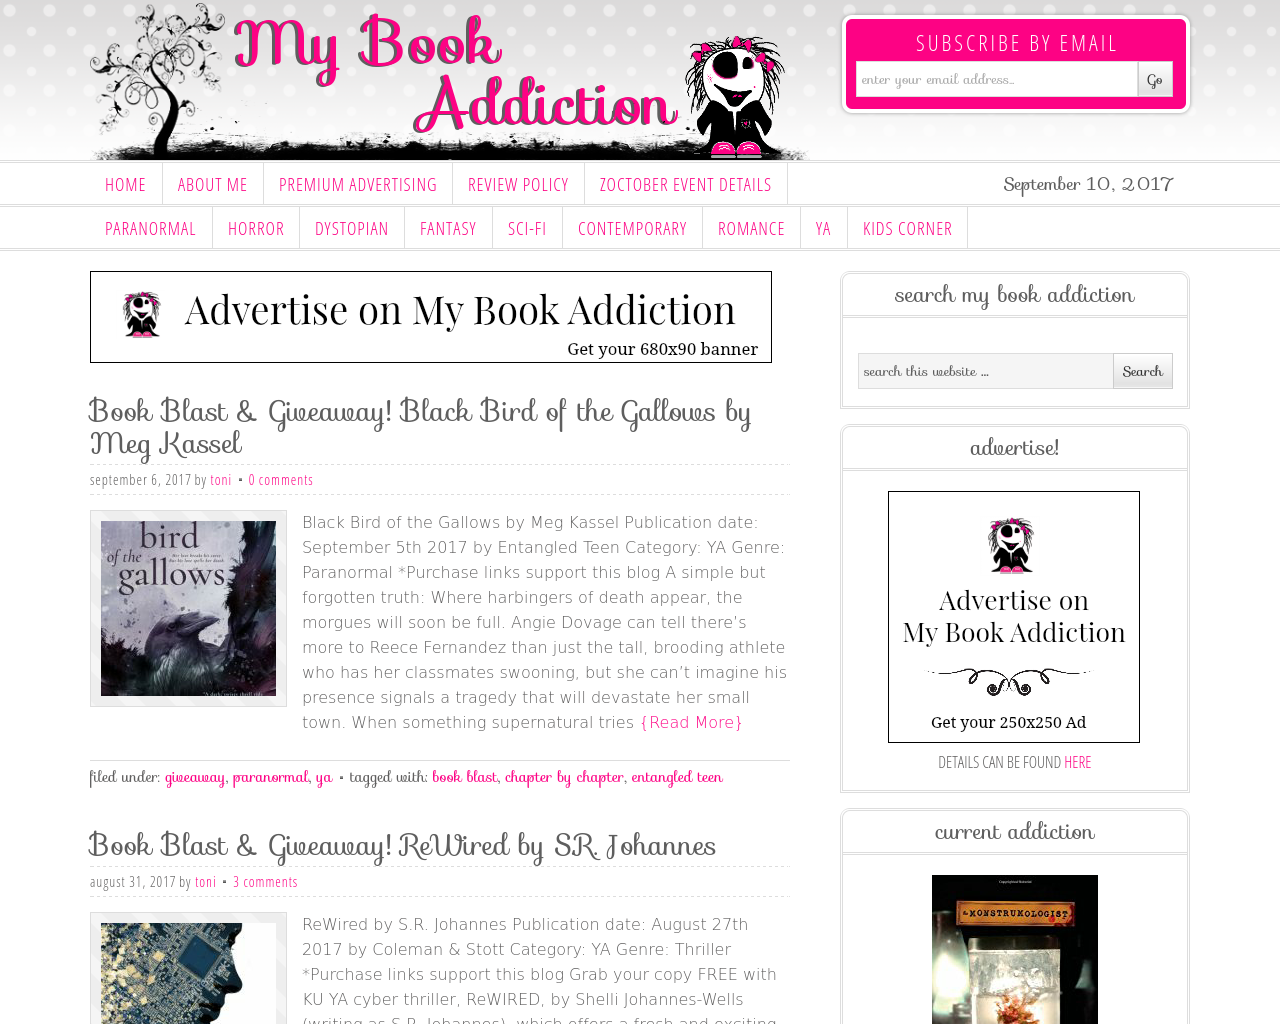 My-Book-Addiction-Advertising-Reviews-Pricing